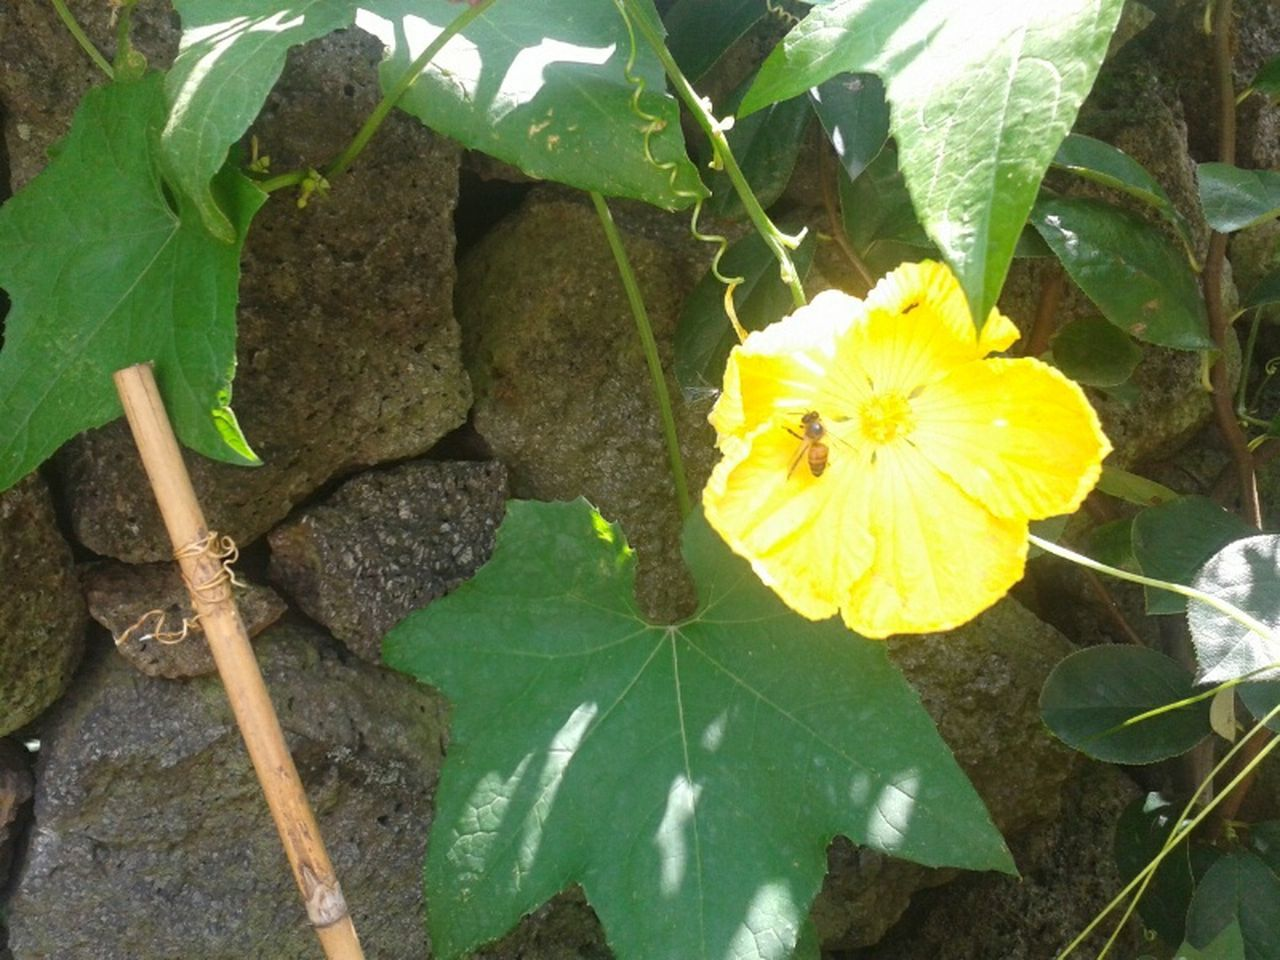 flower, growth, leaf, plant, yellow, nature, no people, outdoors, fragility, beauty in nature, blooming, freshness, day, close-up